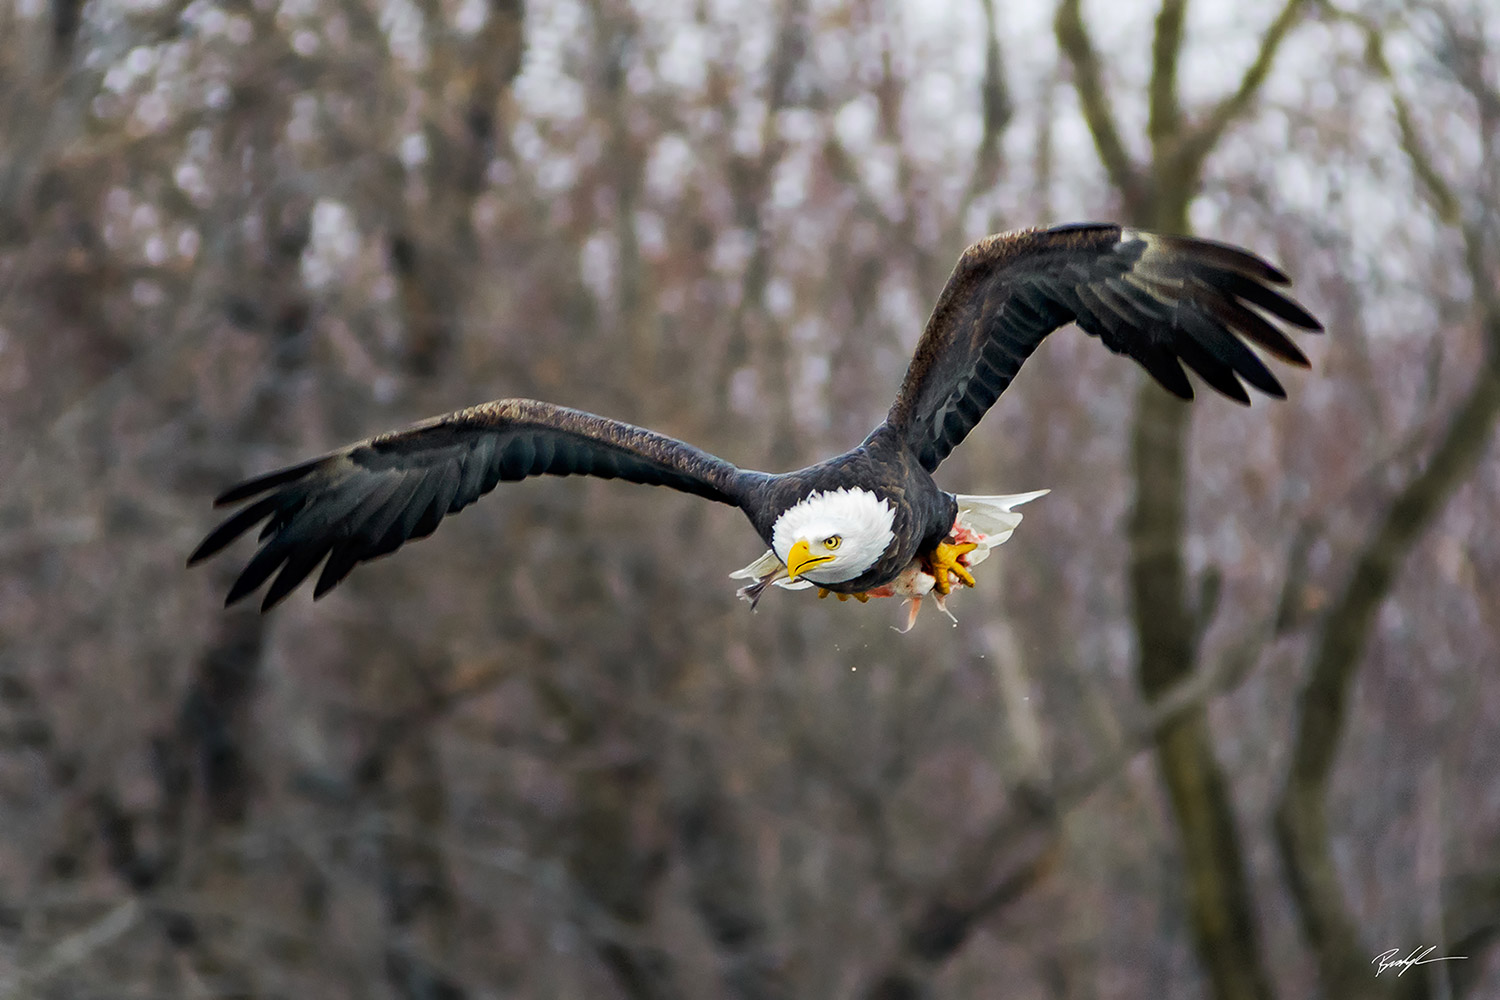 Bald Eagle in Flight with Fish Carlyle Illinois